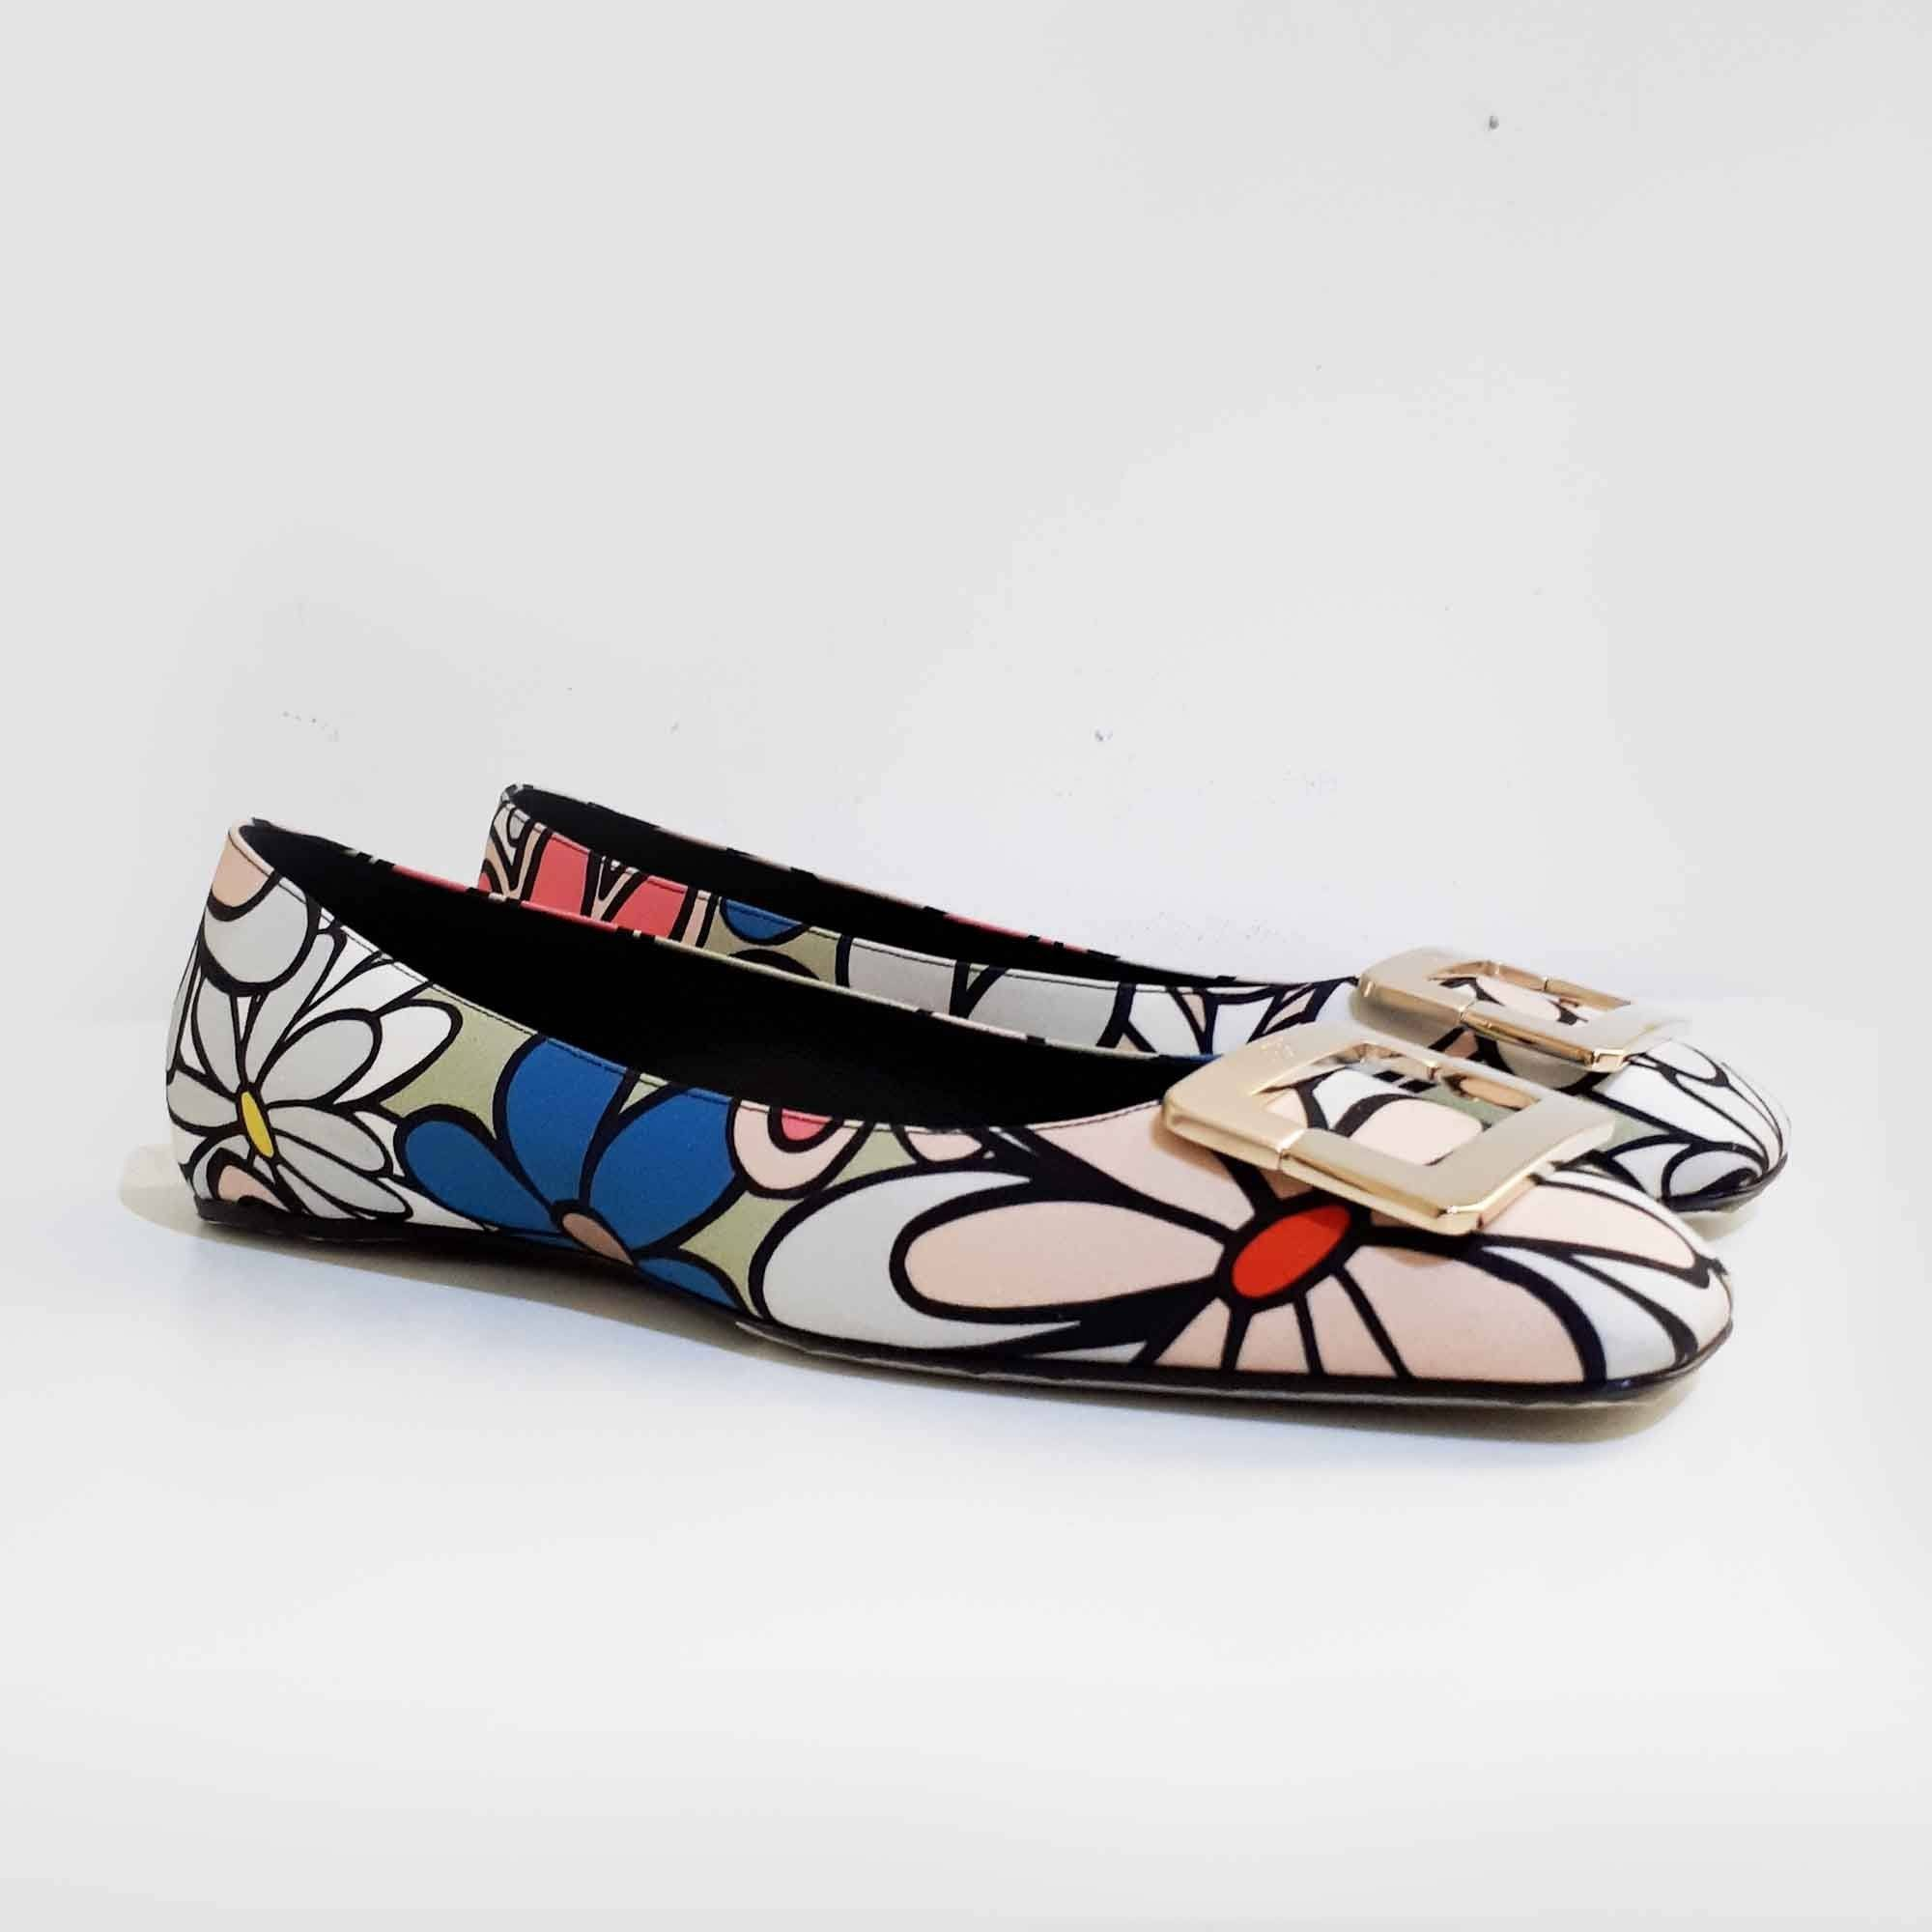 Roger Vivier Square Toe Fabric Ballerinas